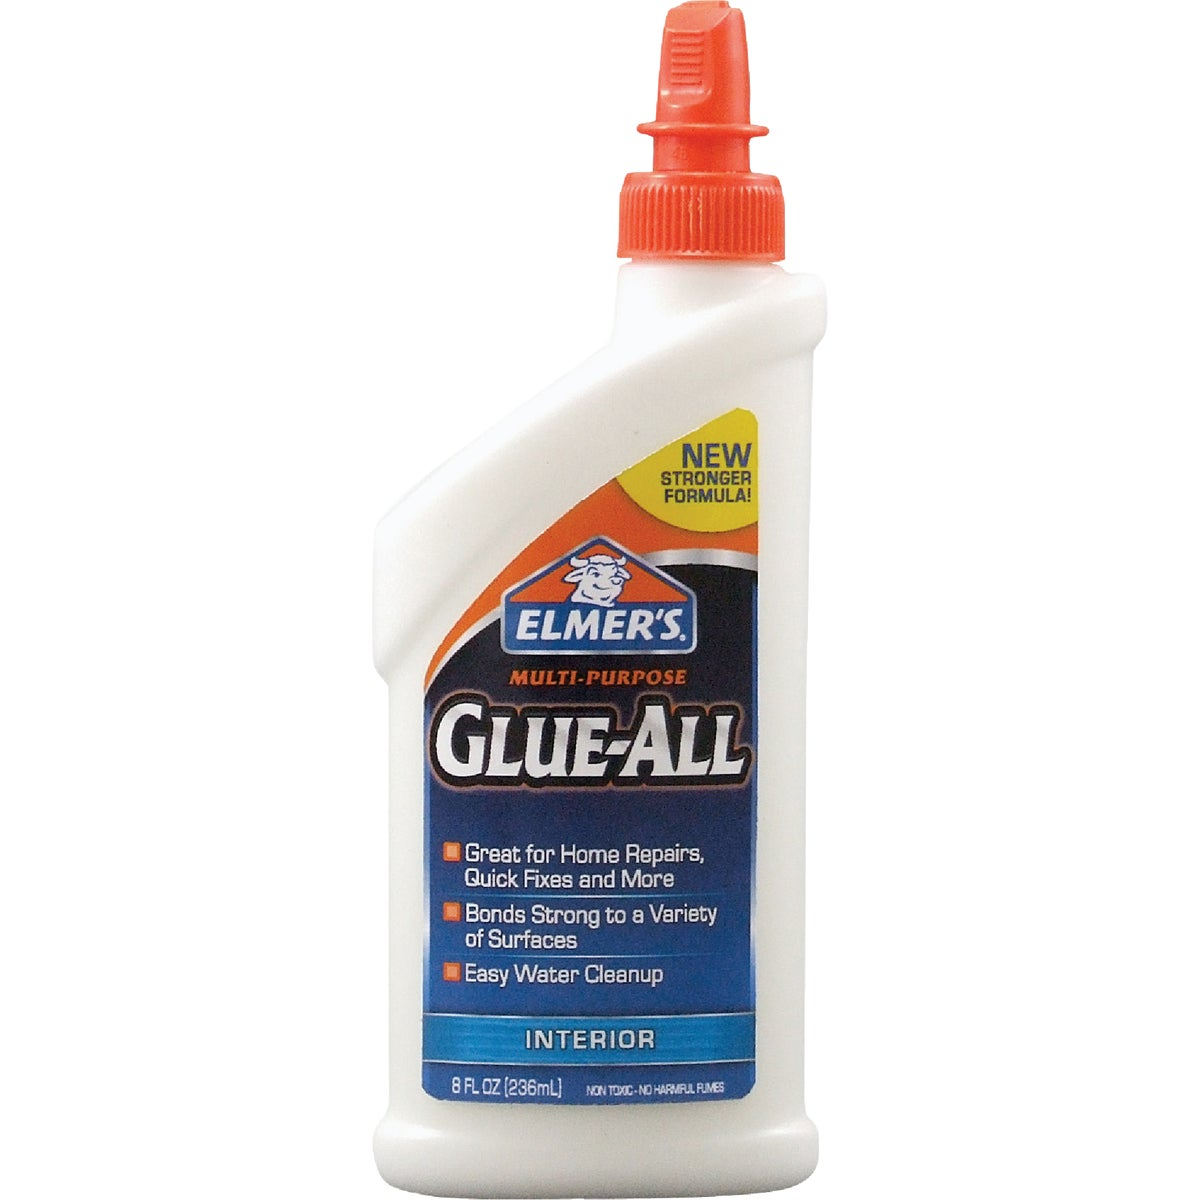 8OZ GLUE-ALL - E3820 by Elmers Products Inc